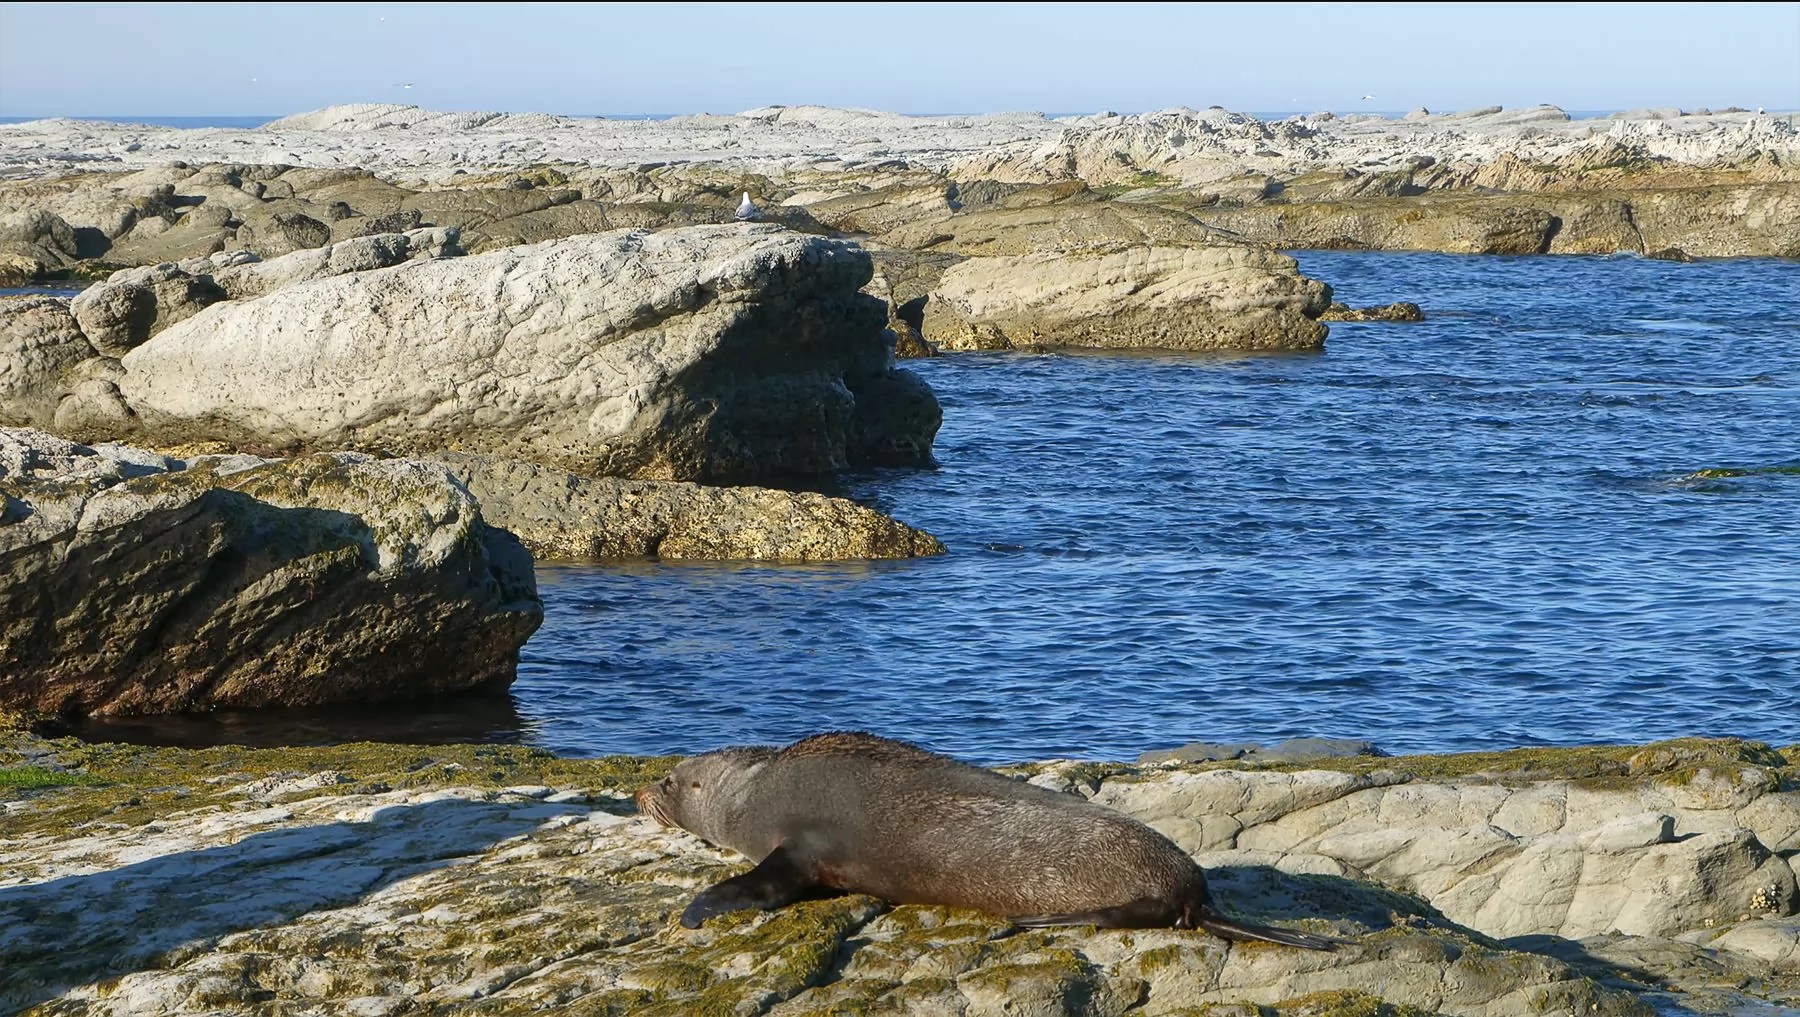 Seal having a rest on the rocks